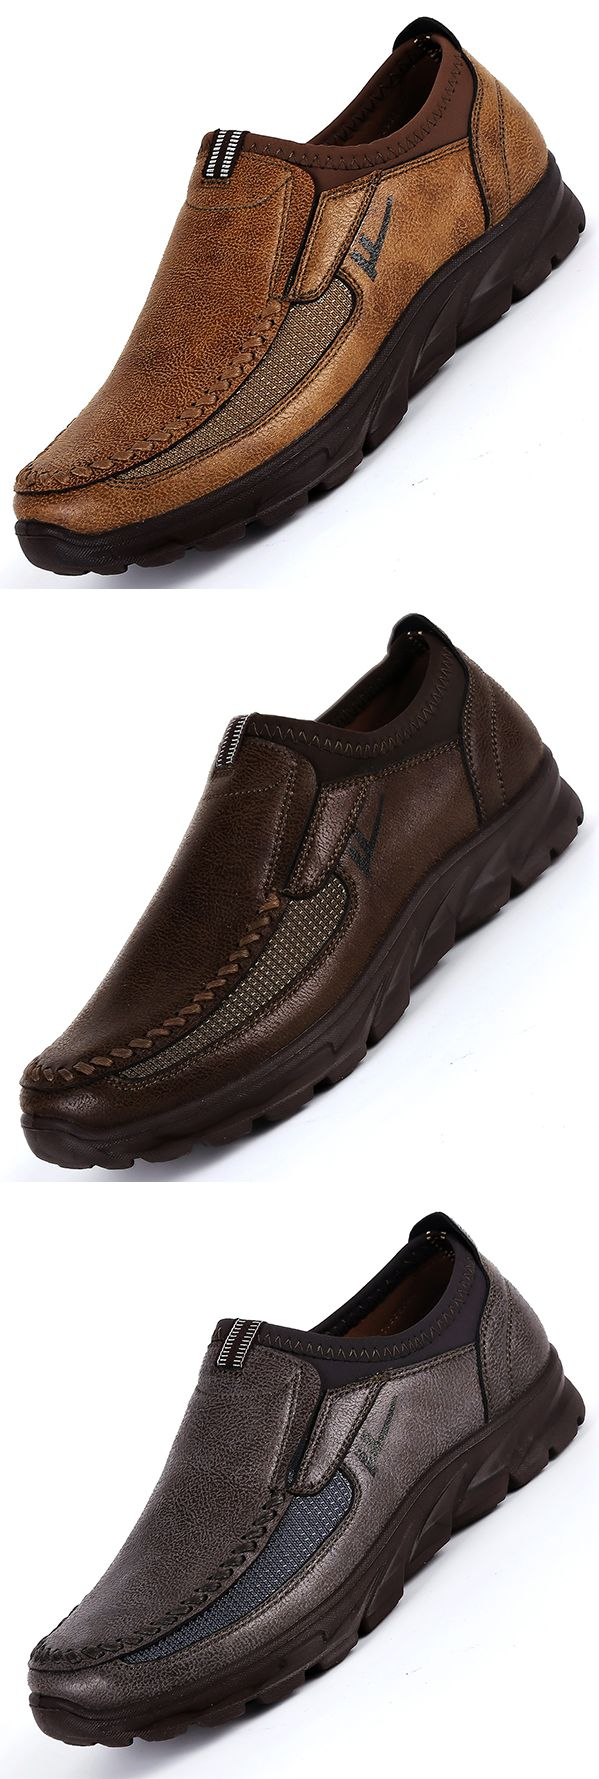 US$31.53 Men Large Size Hand Stitching Microfiber Leather Non-slip Casual Shoes